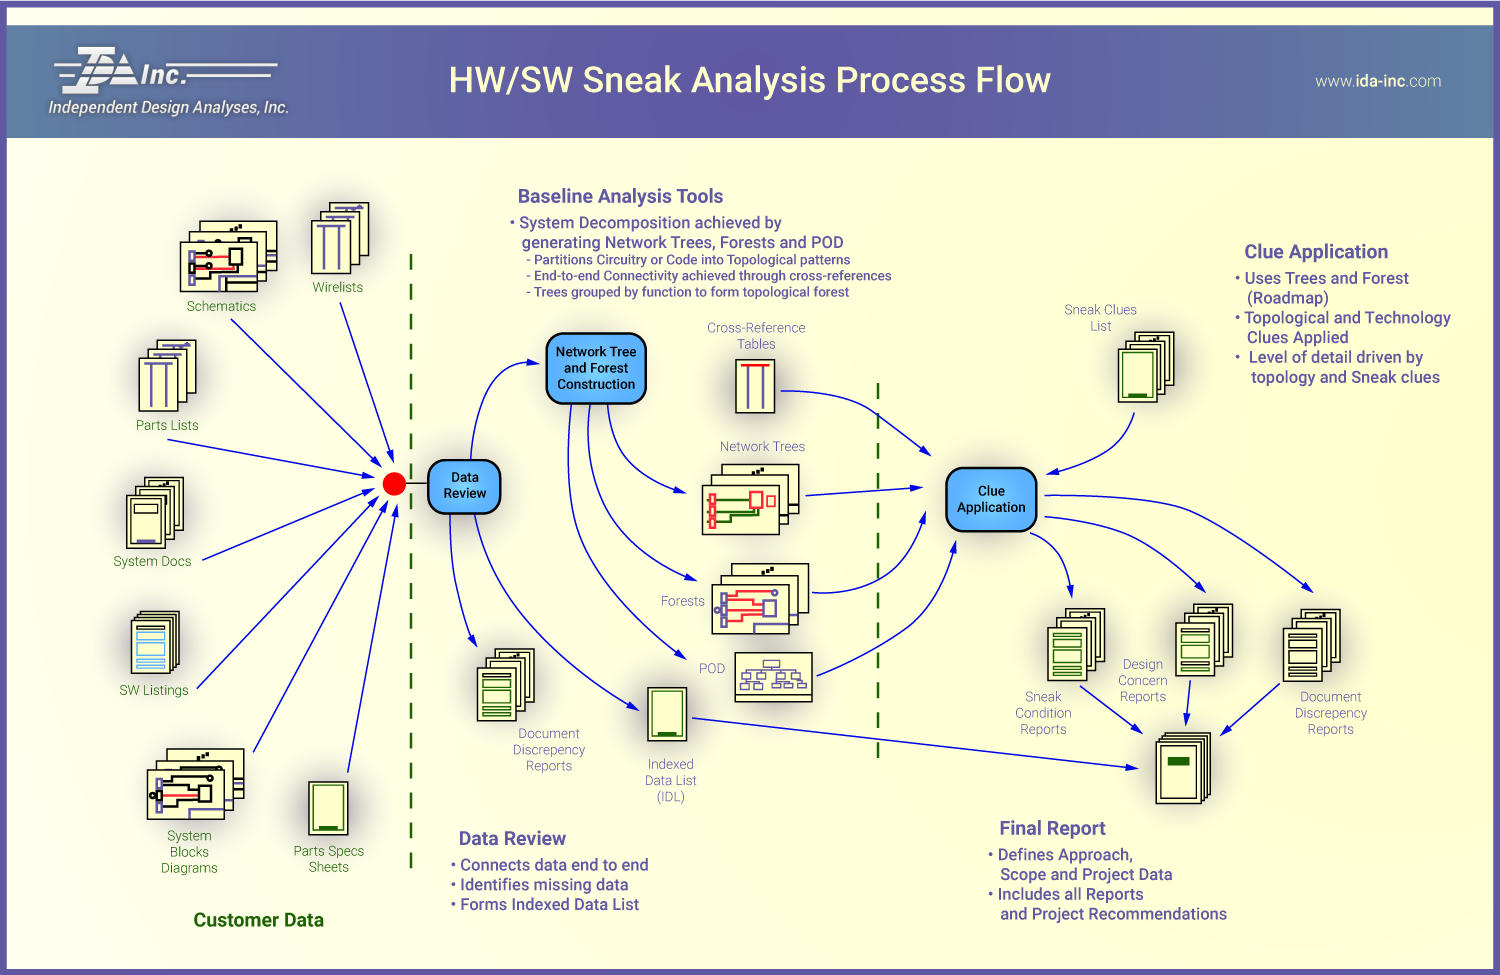 Hardware Software Sneak Analysis Process Flow - IDA Inc